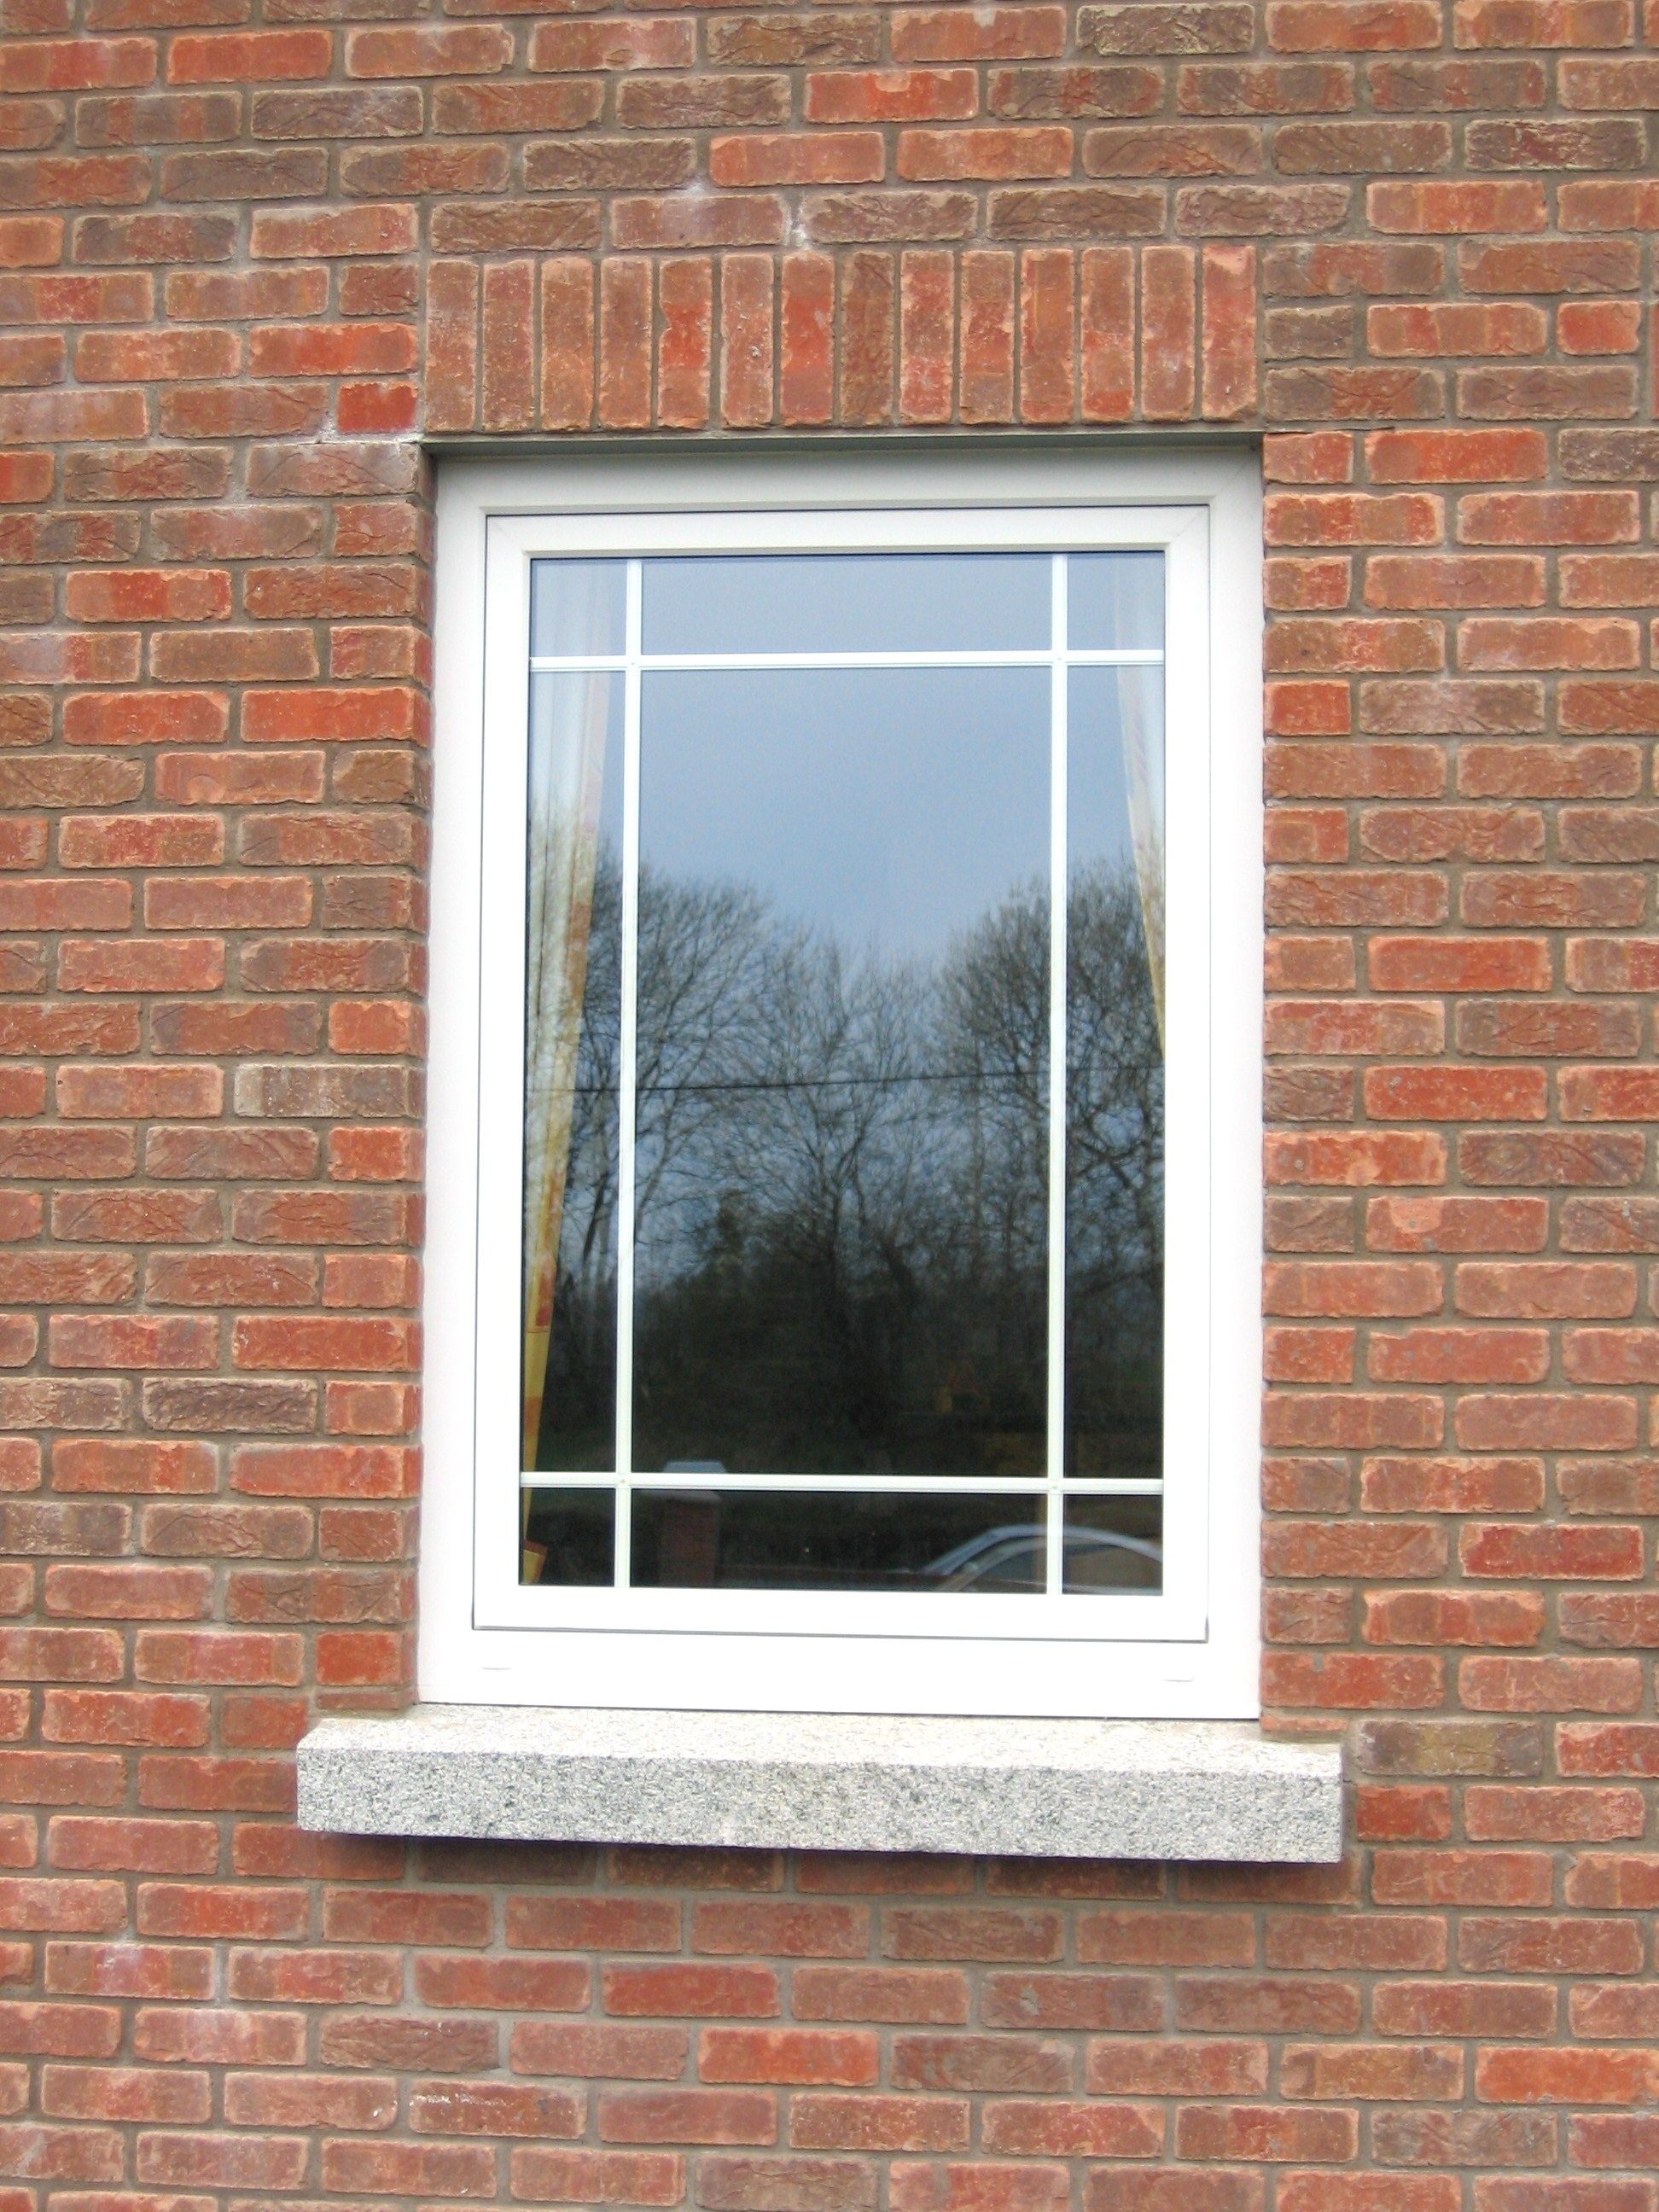 Windowsill designs exterior google search windows for Building window design